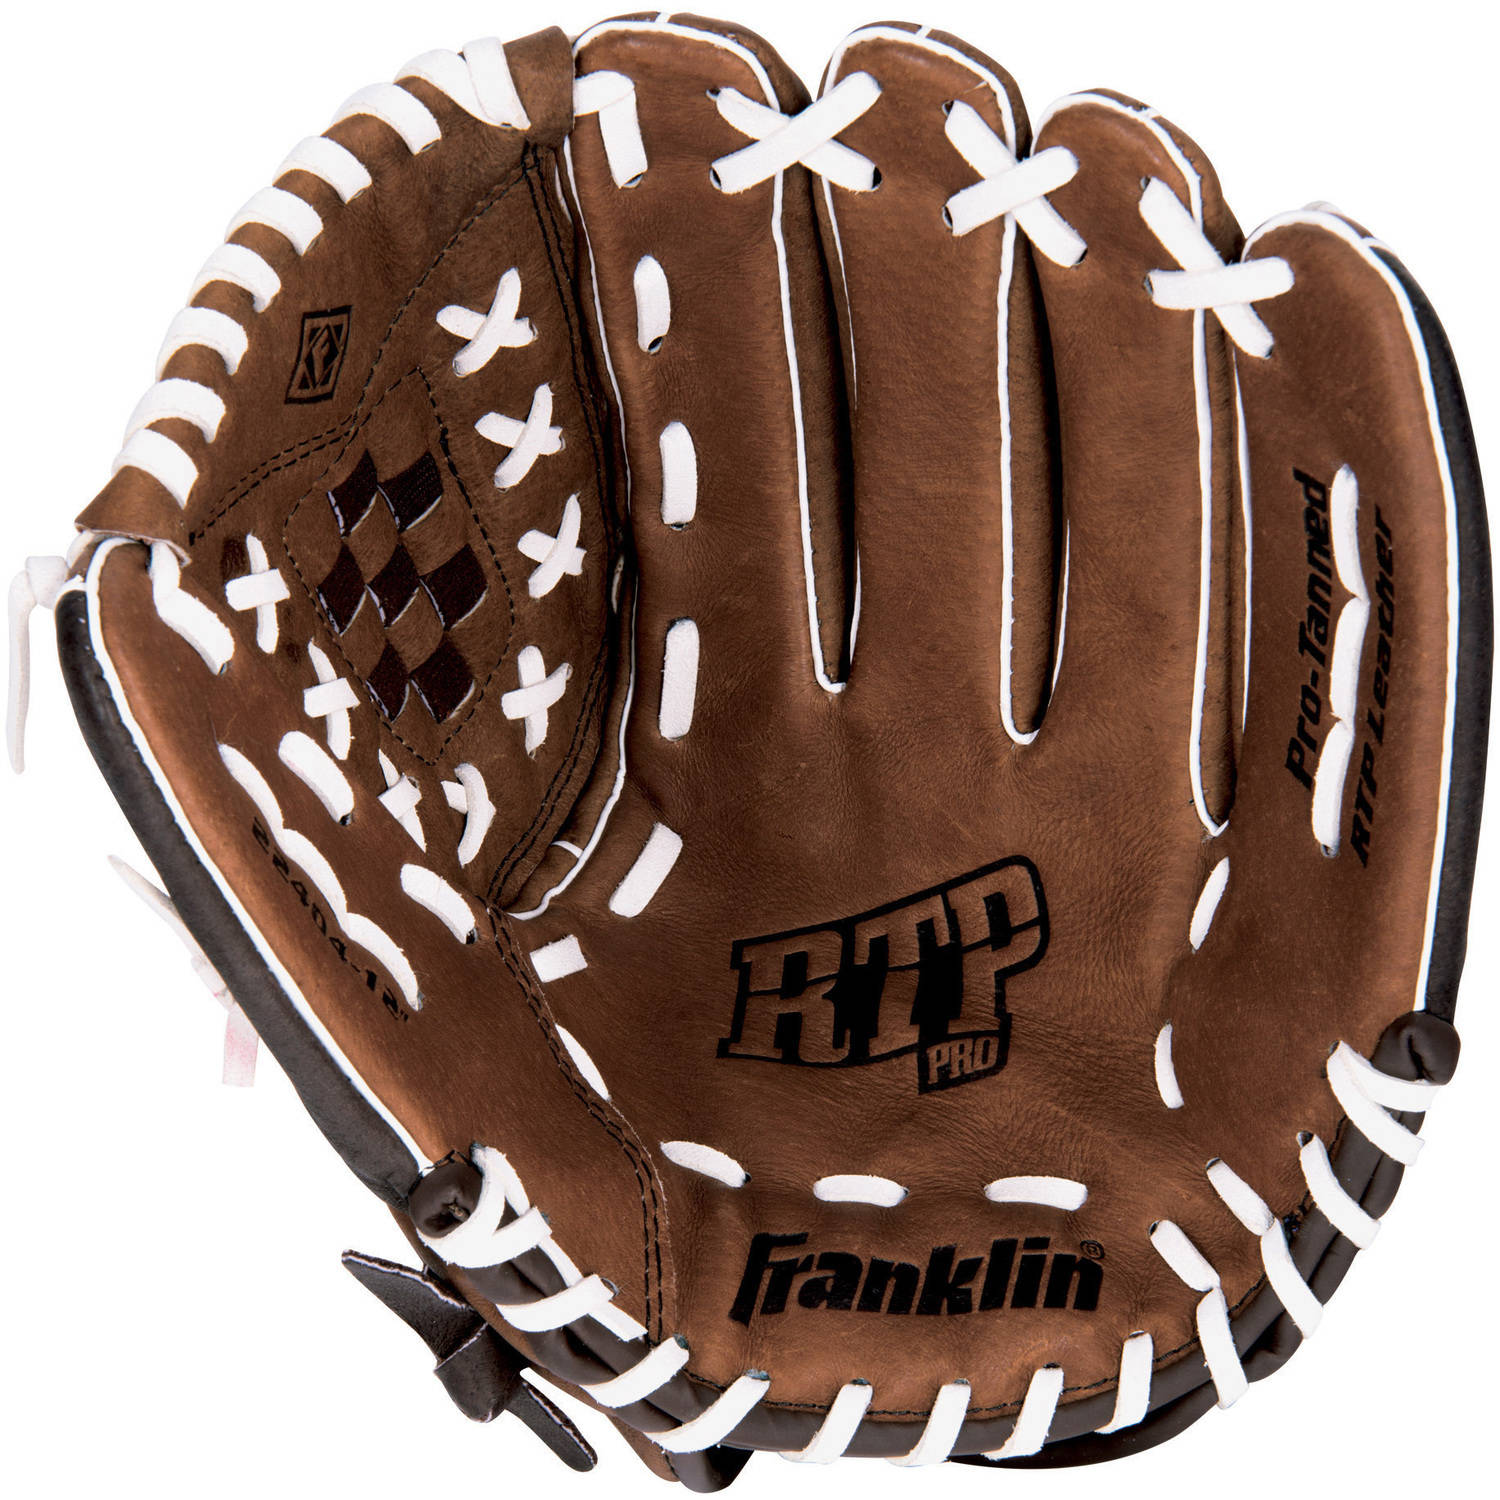 "Franklin Sports 12"" RTP Pro Baseball Glove, Right Hand Throw Image 1 of 2"